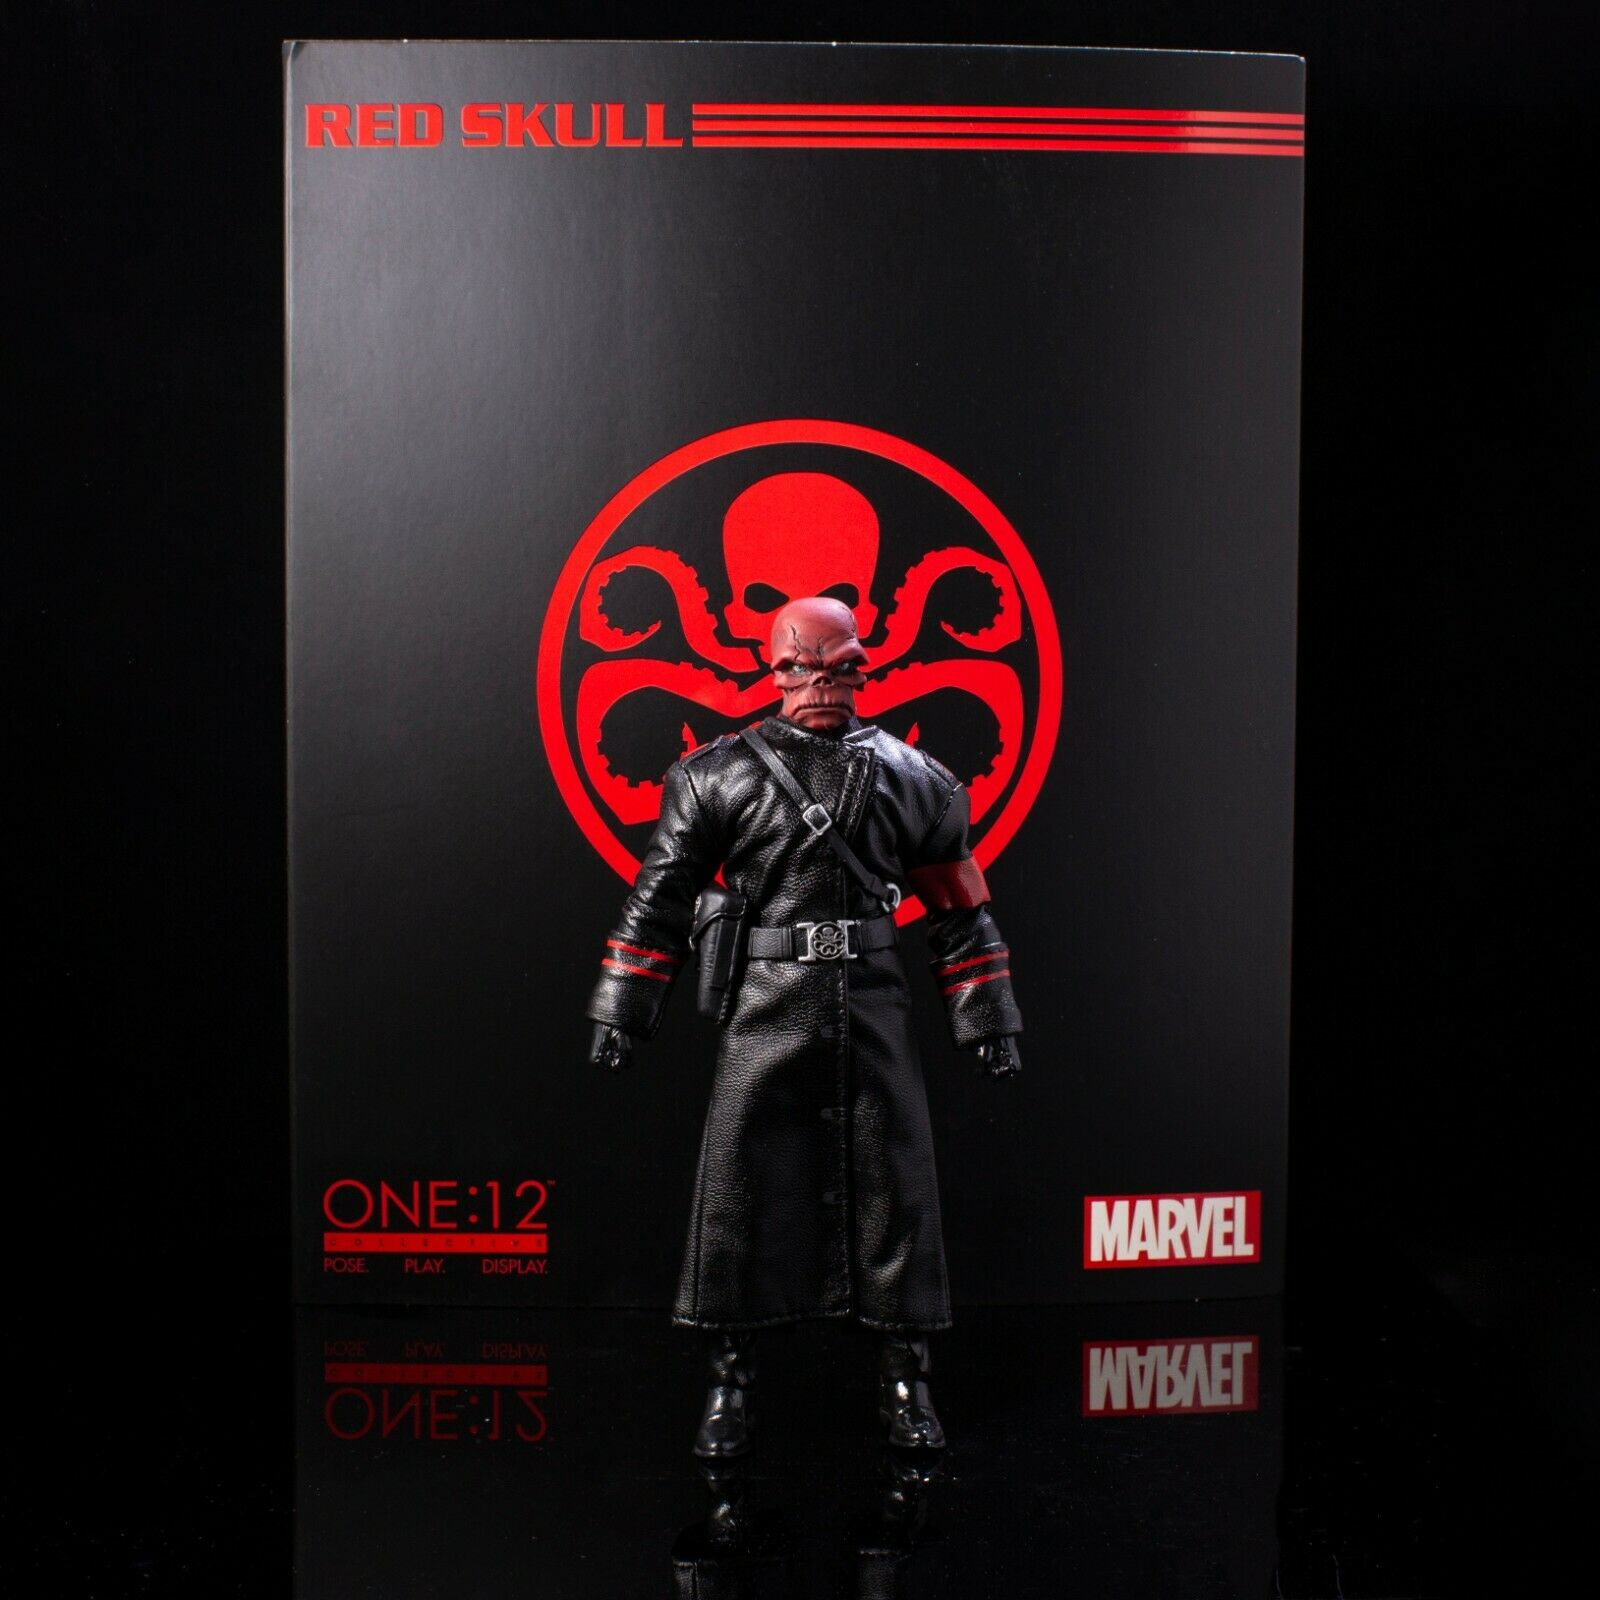 MARVEL BRAND NEW 6in Action Figure AUTHENTIC MEZCO One:12 Collective Red Skull